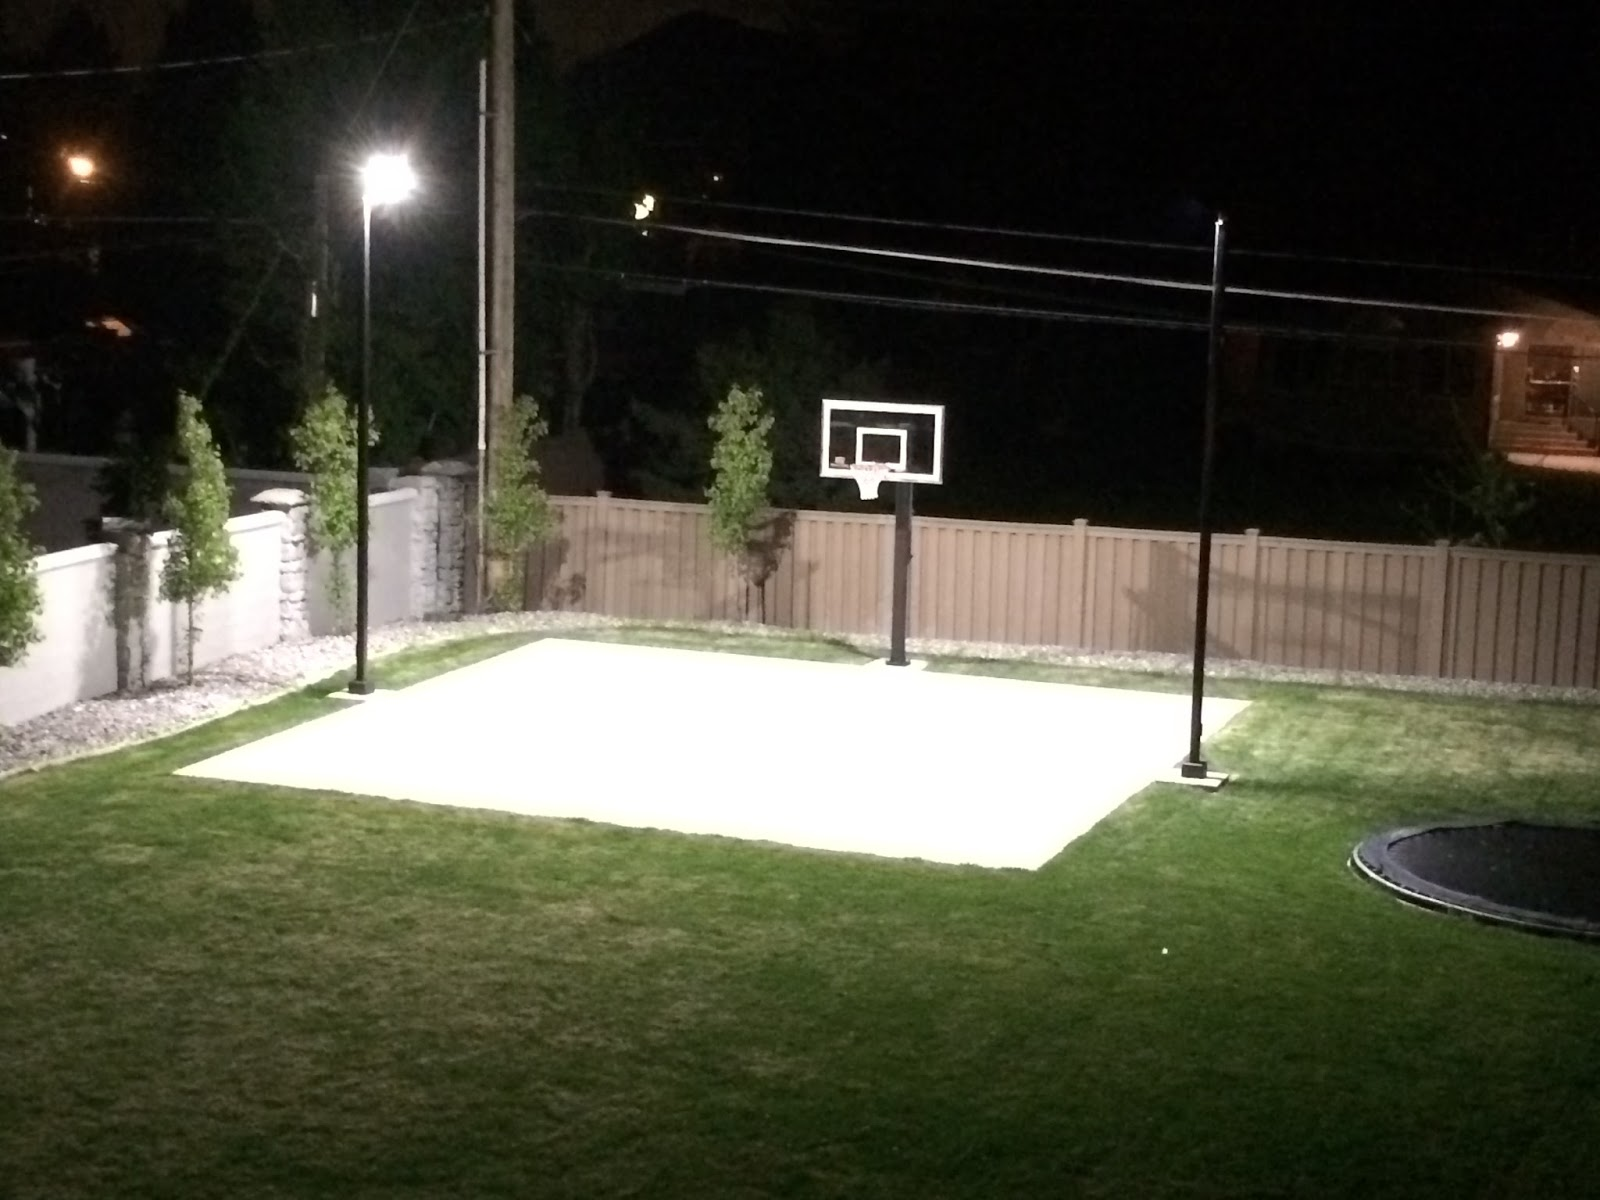 Parking Lot Lighting Pole #5776: Home Backyard Basketball Court Lighting - Step By